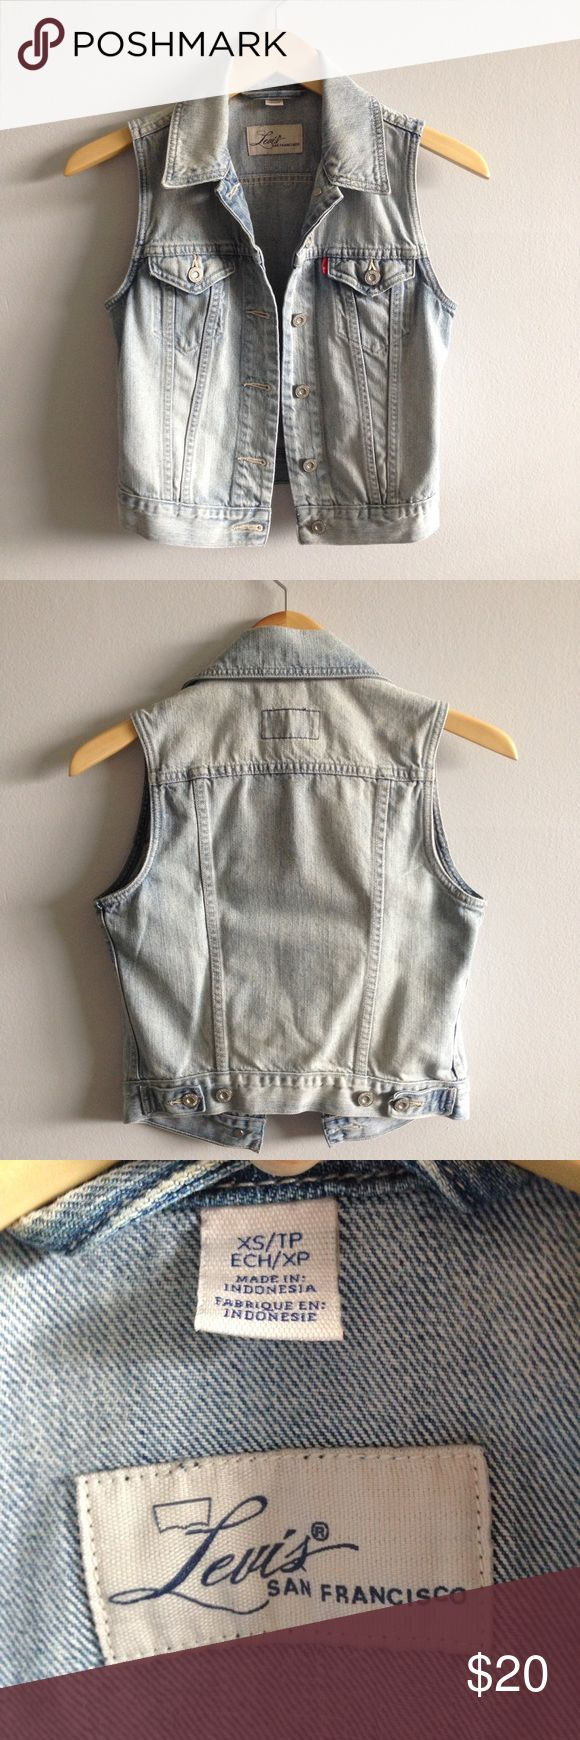 "Levi's Sleeveless Denim Jacket Vest Levi's San Francisco. Measurements laying flat approx: Pit to pit 16.25"", waist 14"", length 18"". Size XS but could also fit size S as well unbuttoned Levi's Jackets & Coats Vests"